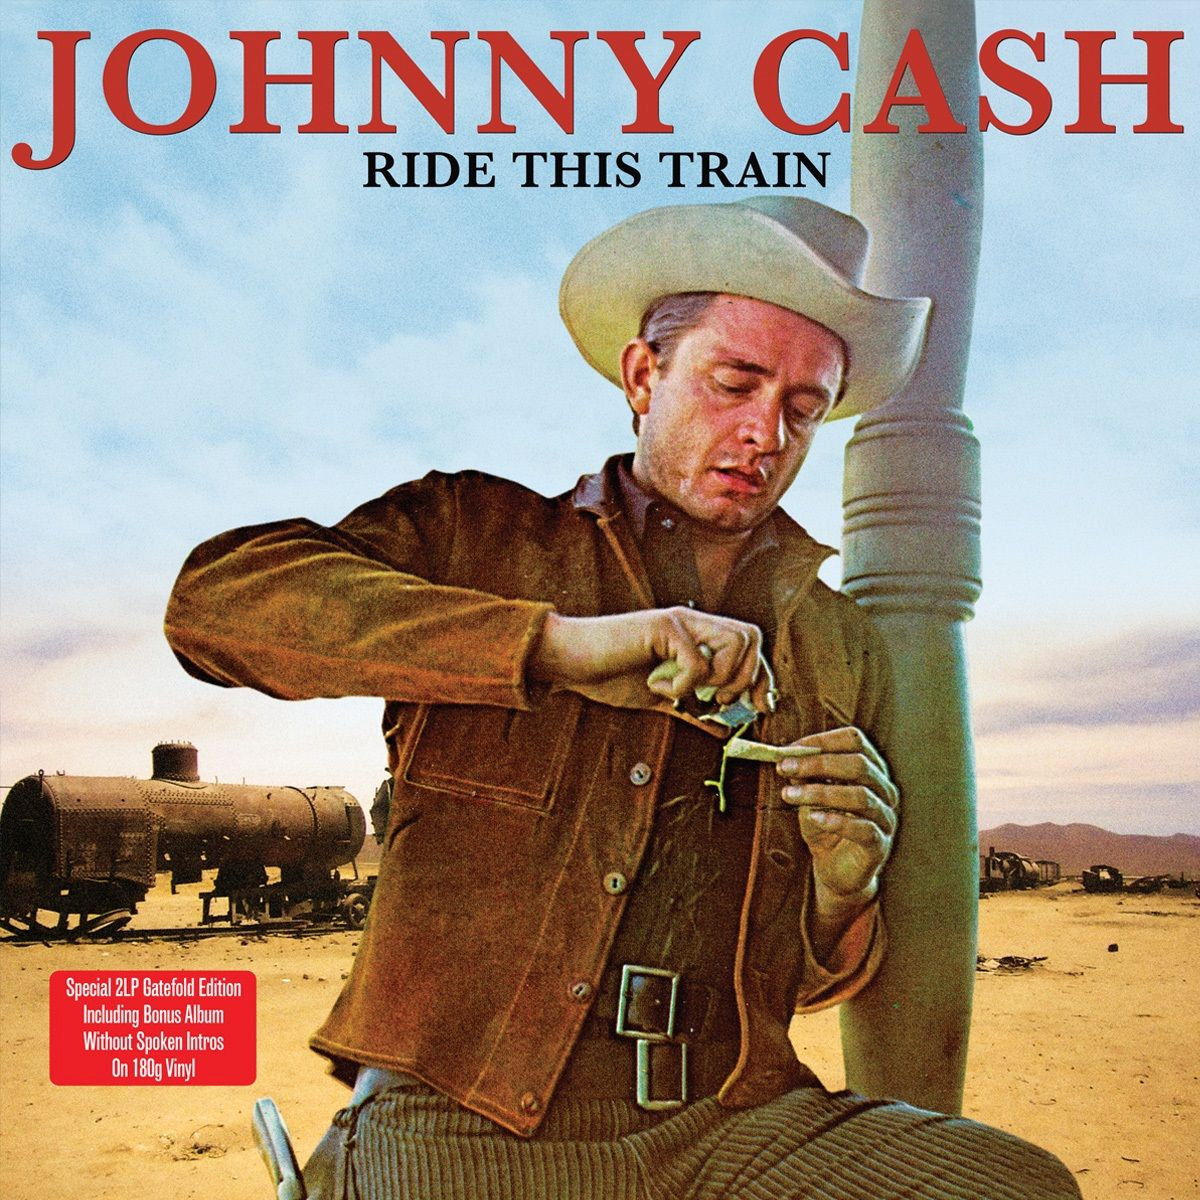 Johnny Cash - Ride This Train (180 Gram/w/bonus Album - 2 Vinyl Set)